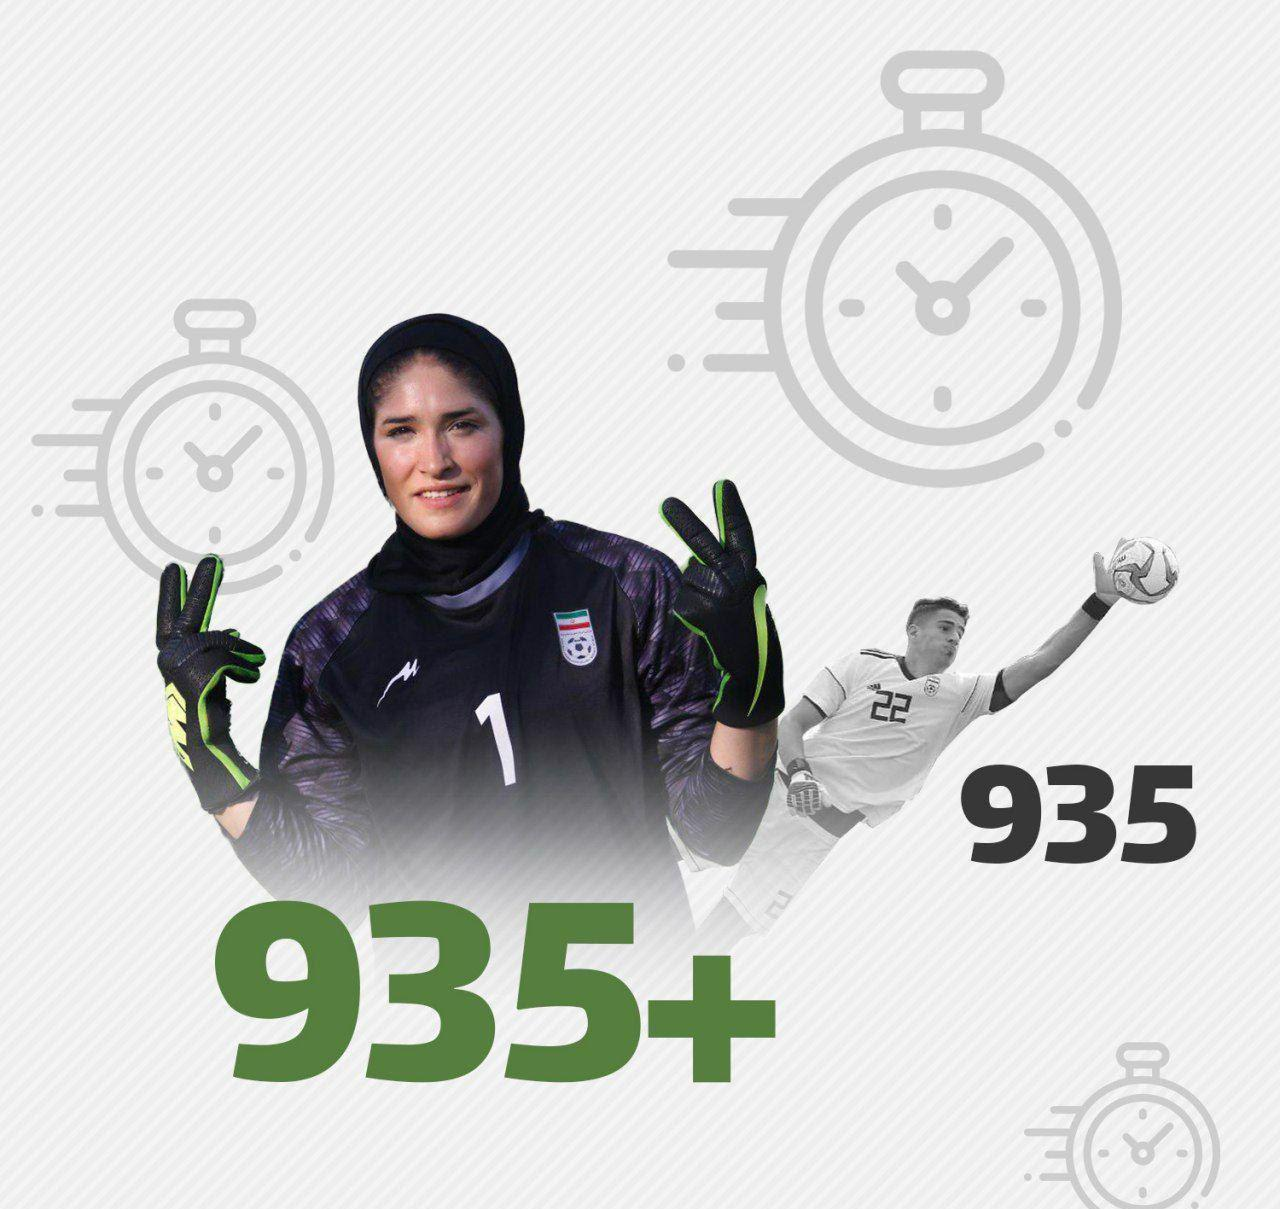 20 Year Old Girl Breaks Iran Clean Sheet Record Iran Front Page